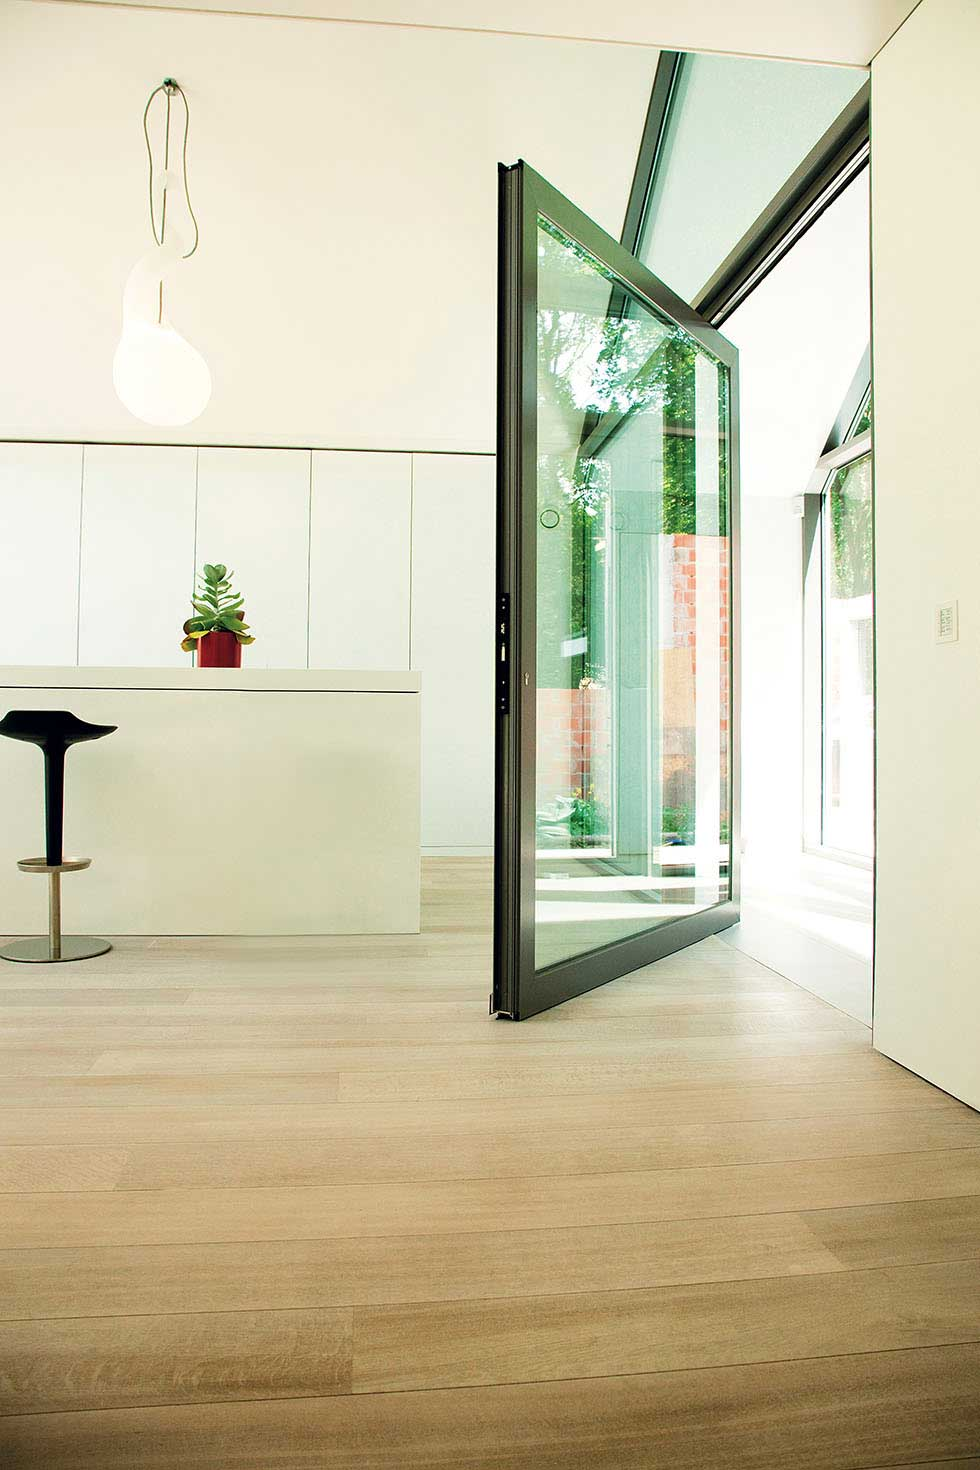 3_Reynaers-at-Home-pivot-door-1